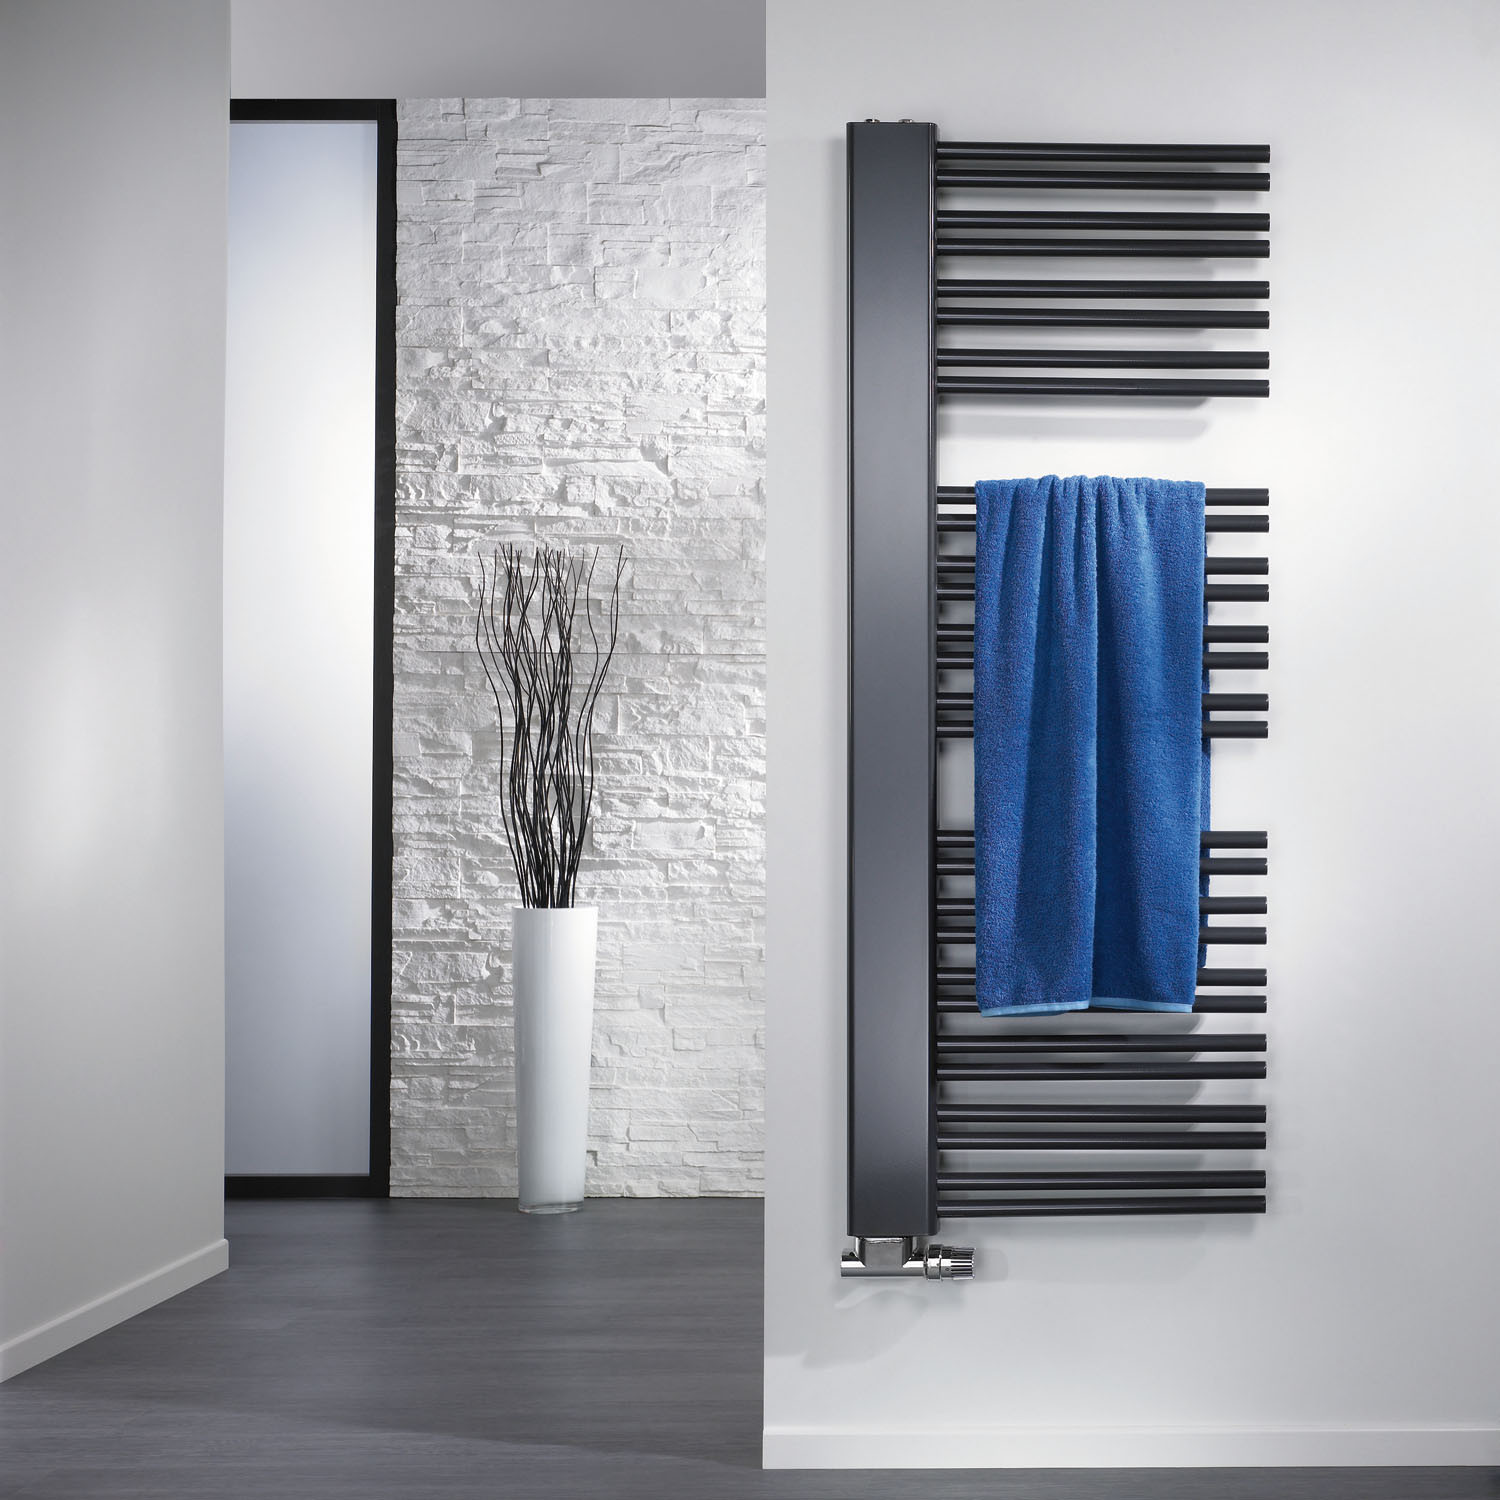 Heated Towel Bathroom Radiators Image Of Bathroom And Closet